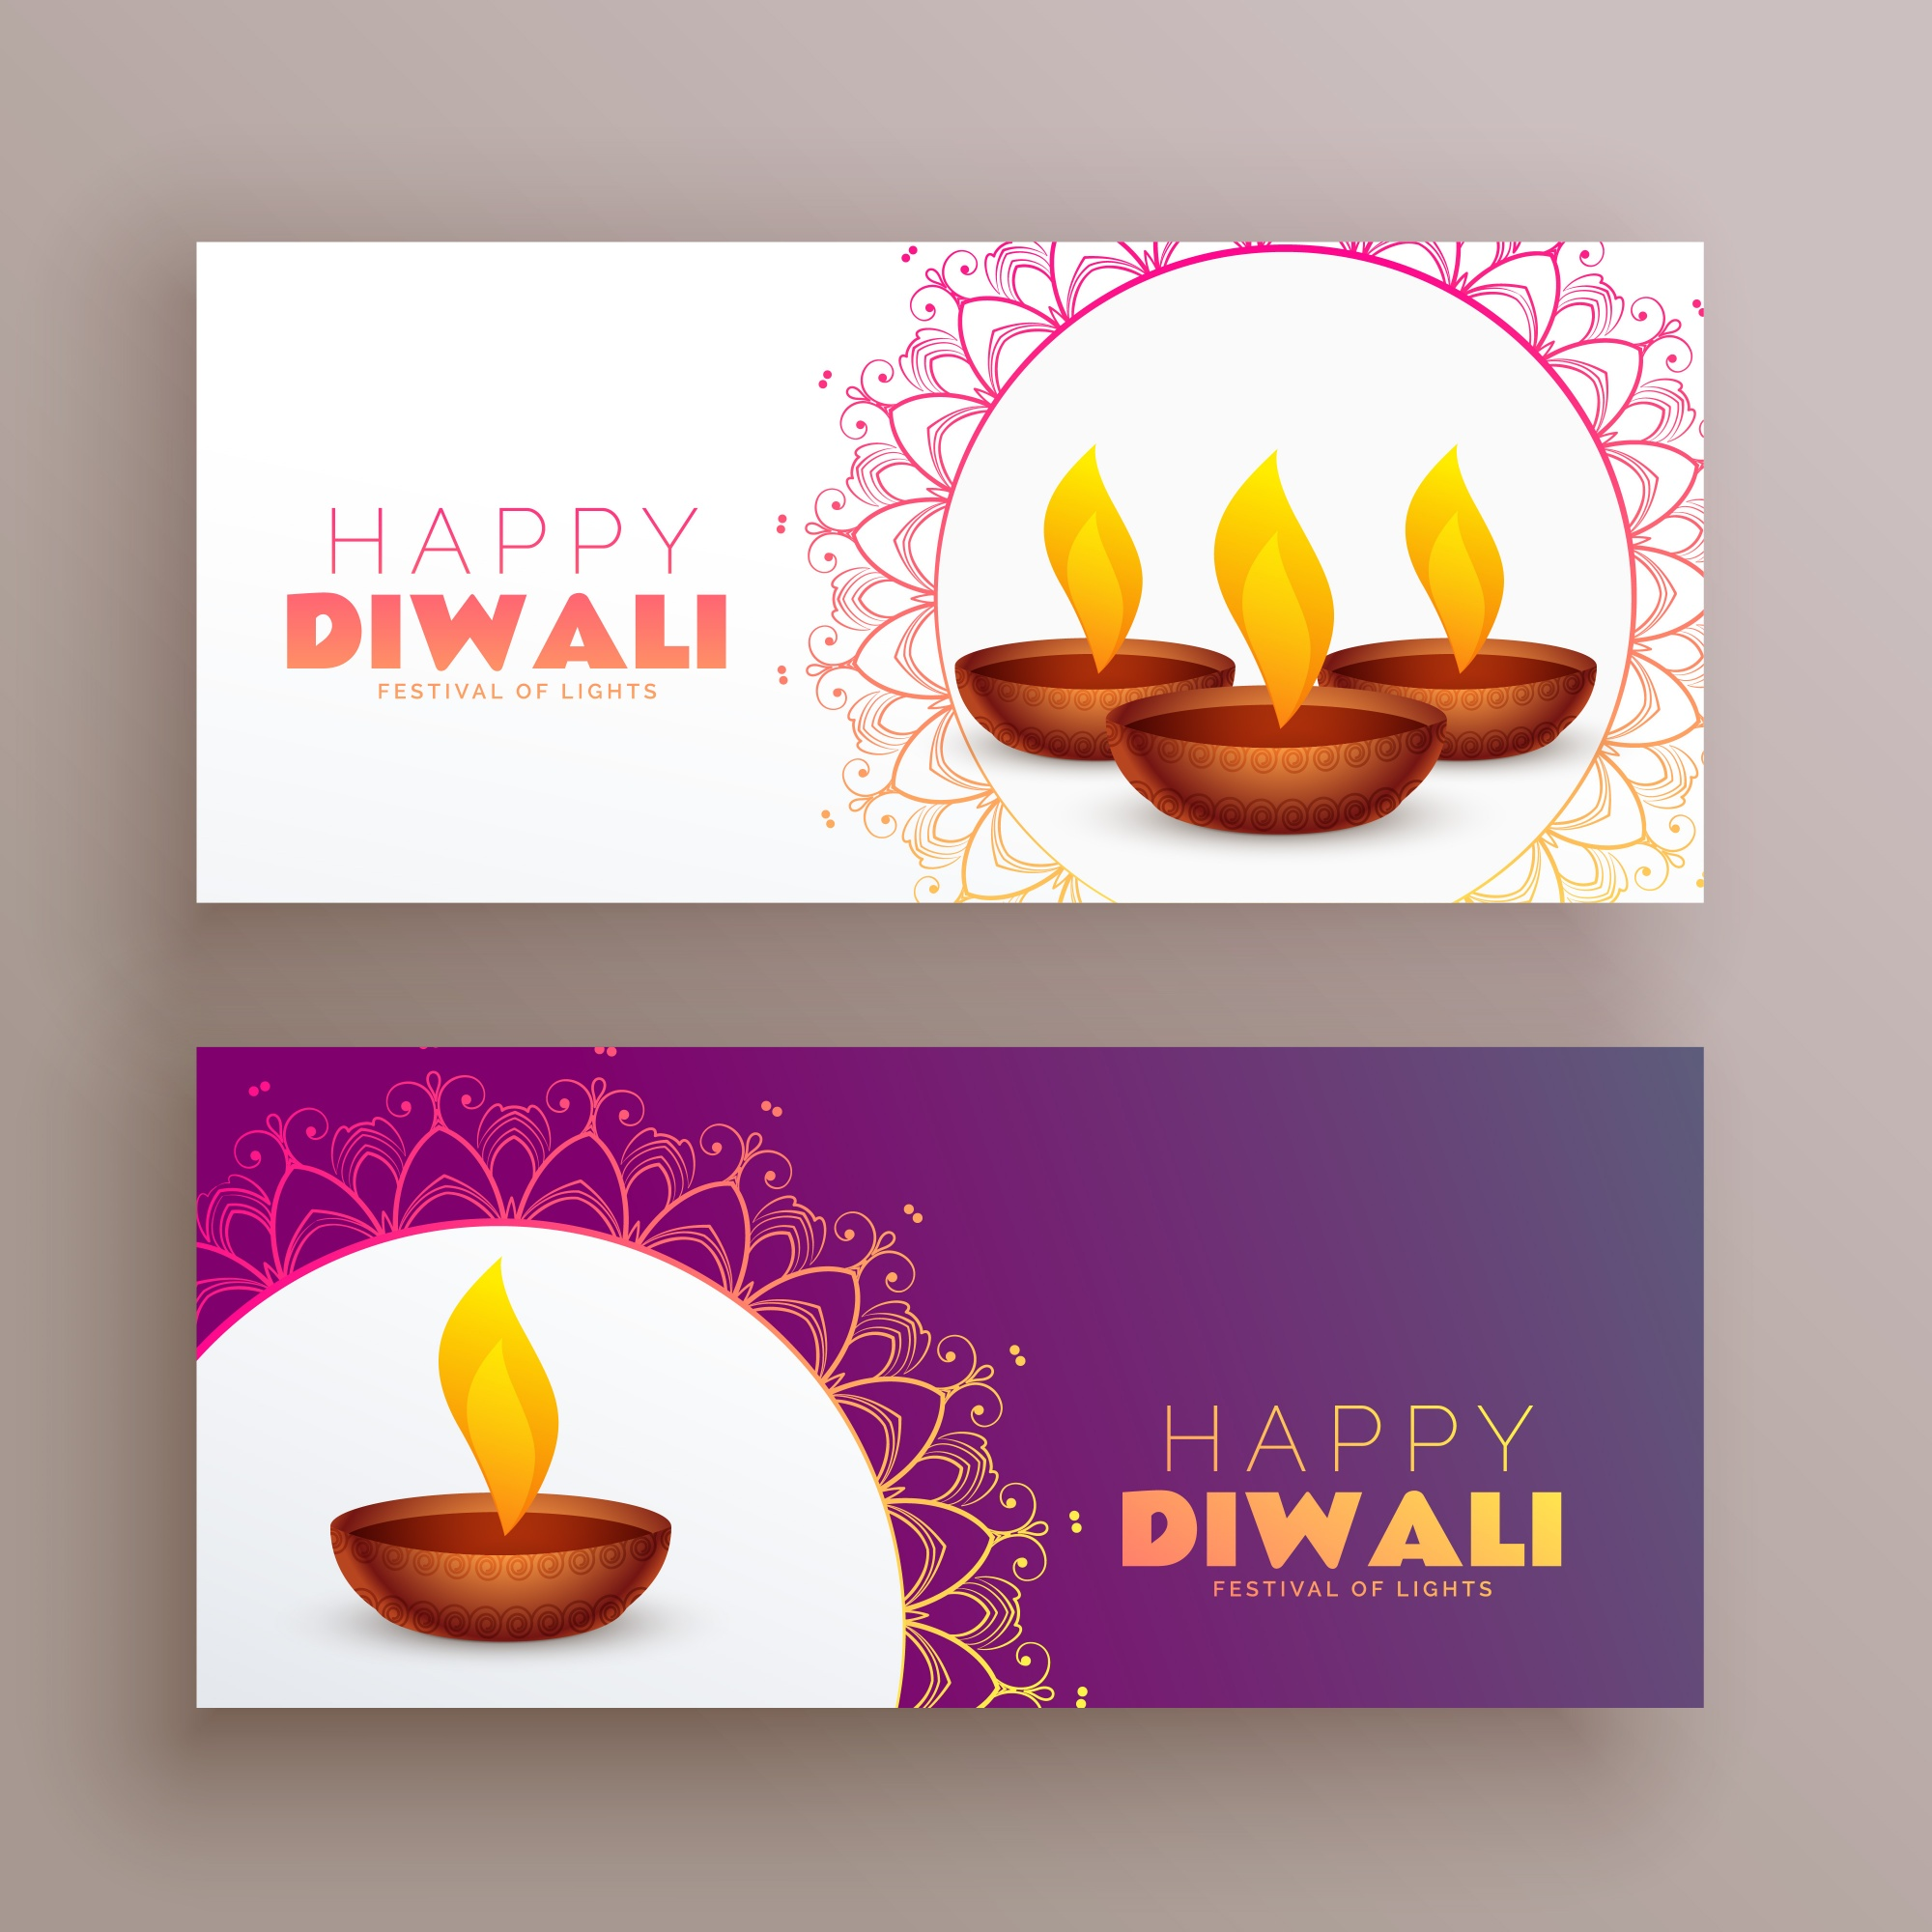 Elegant diwali festival banners greeting card set background